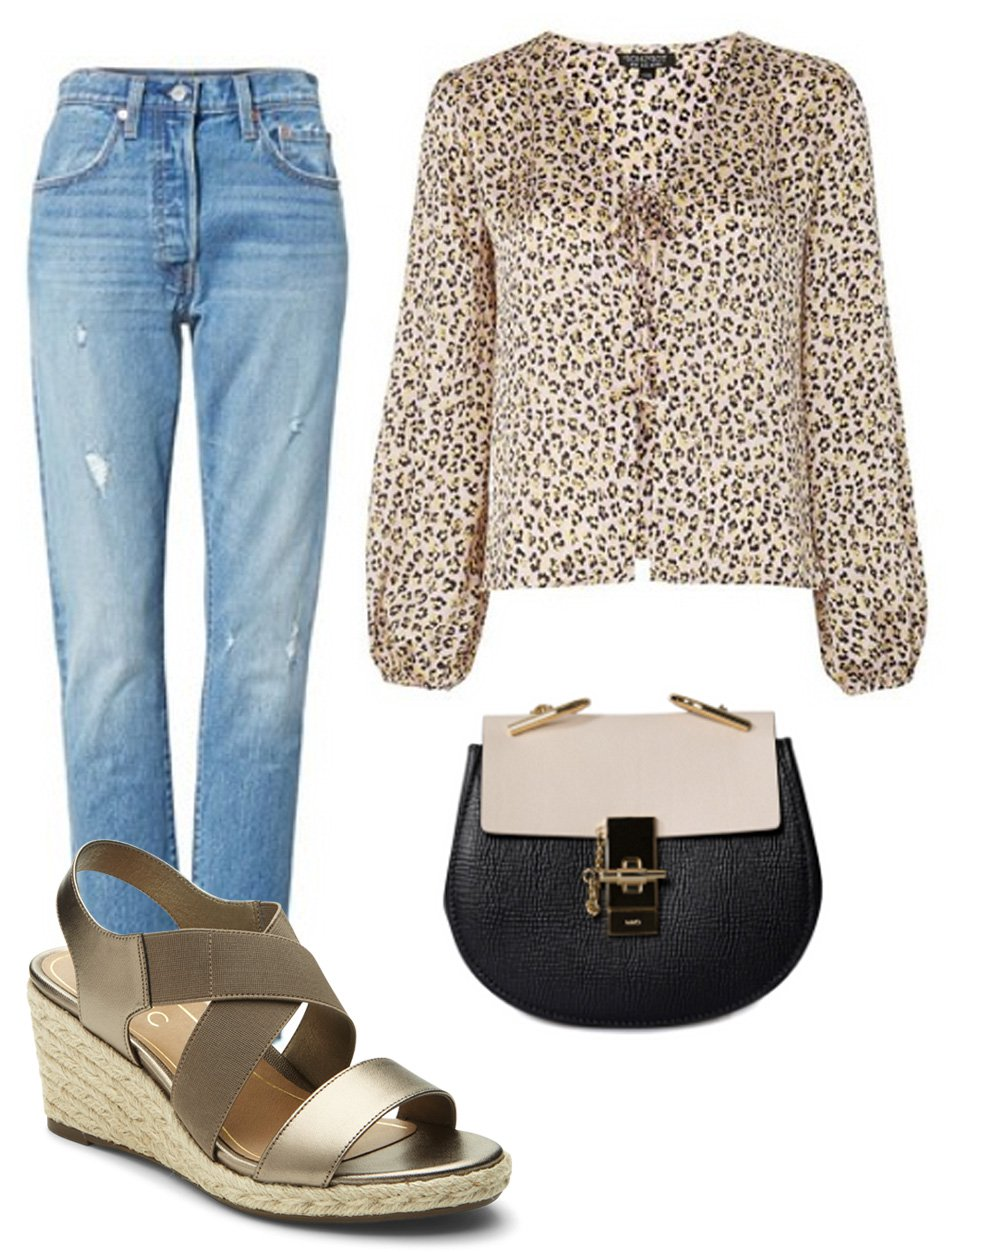 HOW TO WEAR IT: CASUAL CHIC